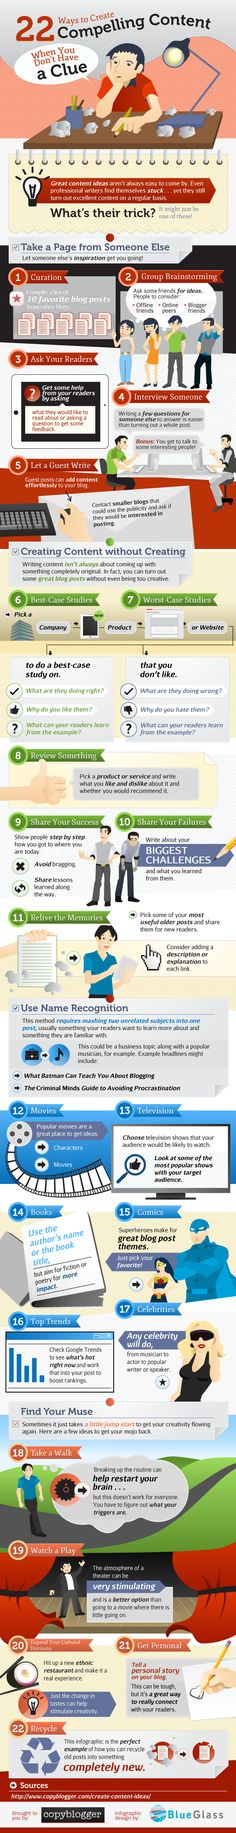 Great @copyblogger infographic